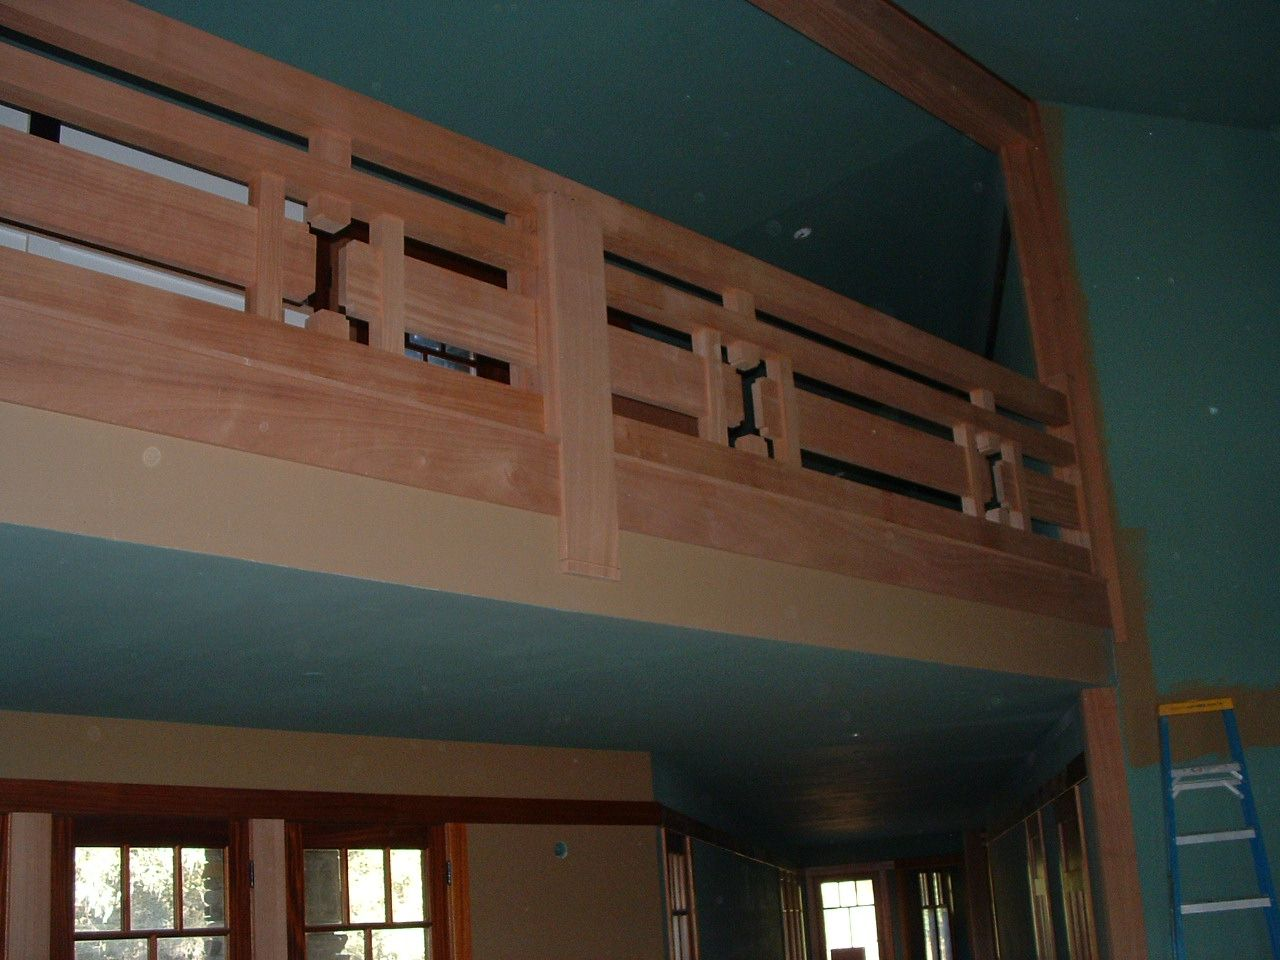 Best Mahogany Stair Rail With Images Stairs Stair Railing 400 x 300